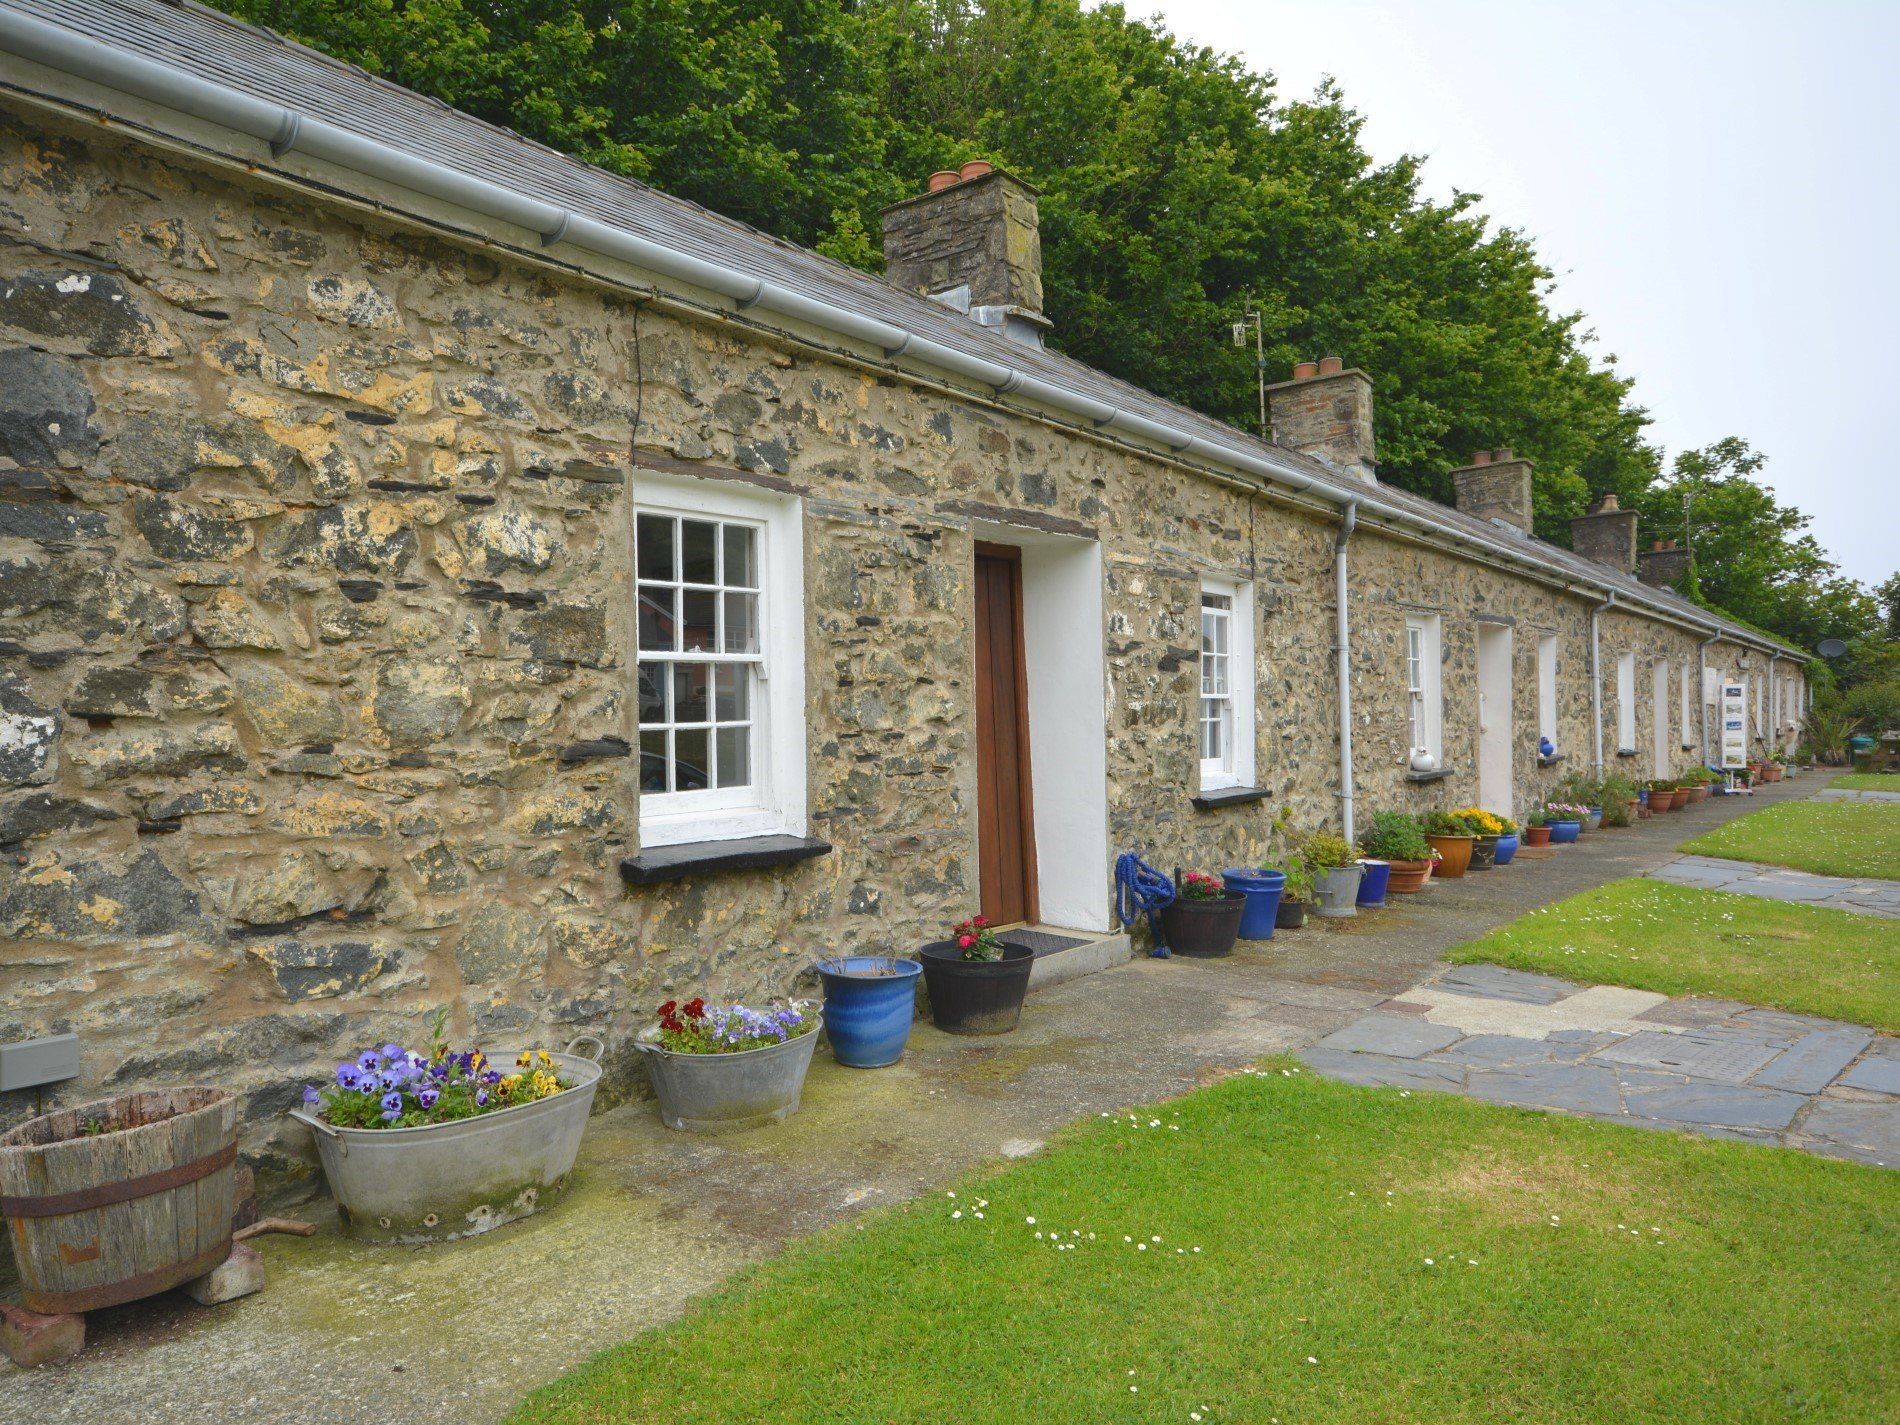 1 Bedroom Cottage in Haverfordwest, Mid Wales